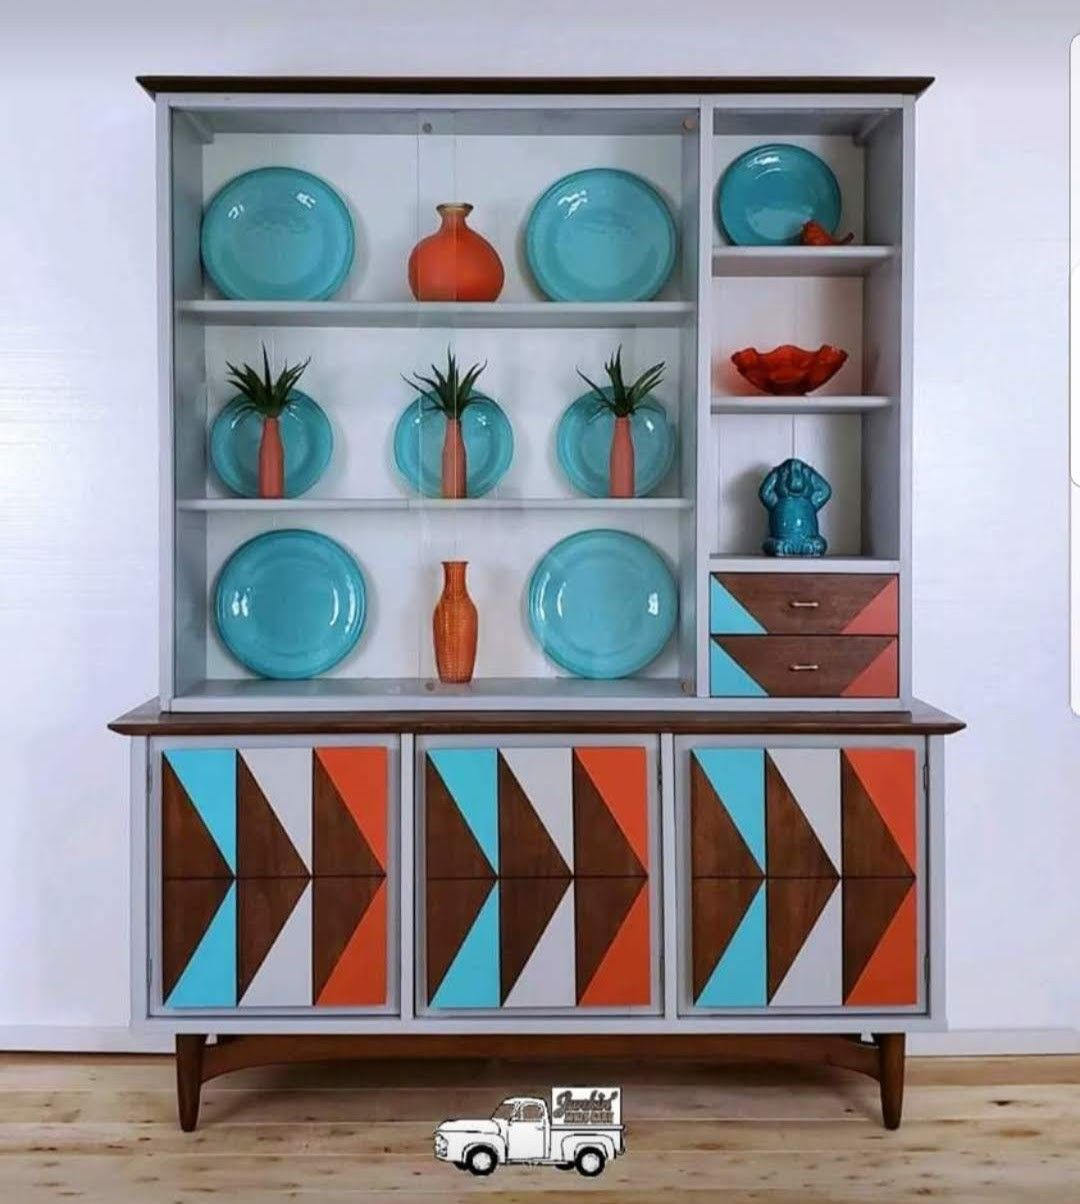 Gorgeous mcm china hutch thats for sale on facebook 1950s furniture mid century furniture